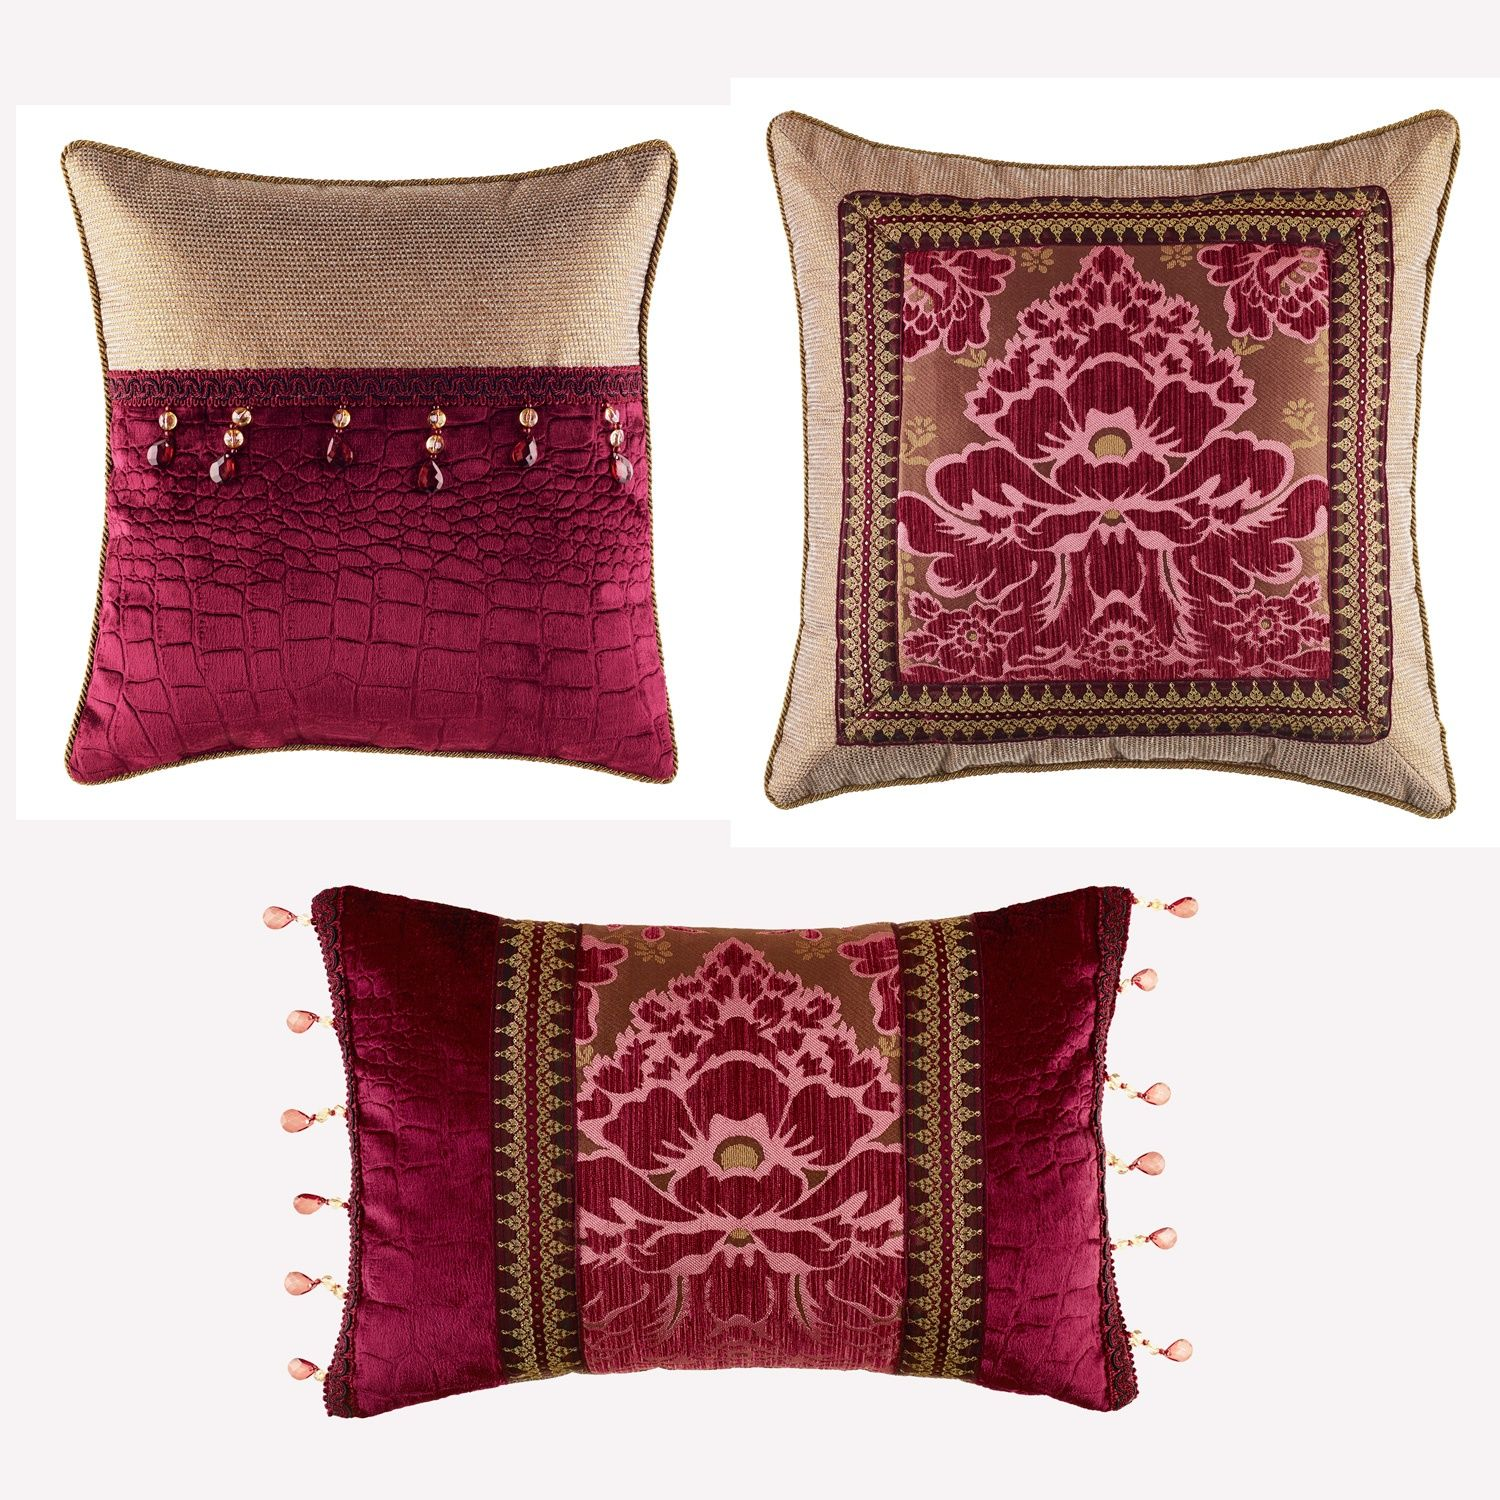 colorful pillows and throws google search - Pillows Decorative